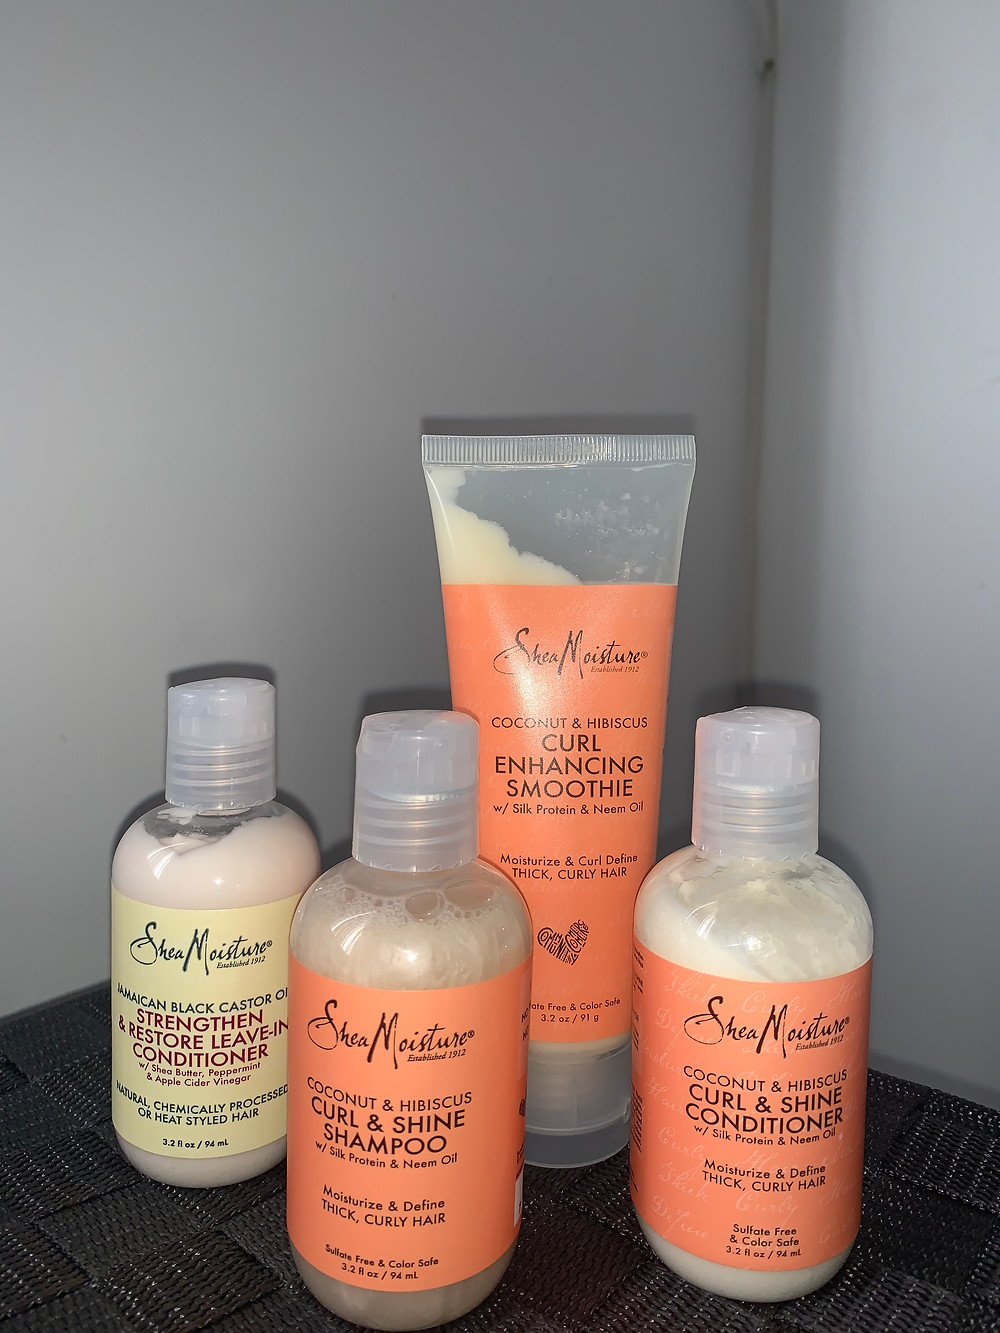 Pretty much the entire SheaMoisture line I purchased from target.